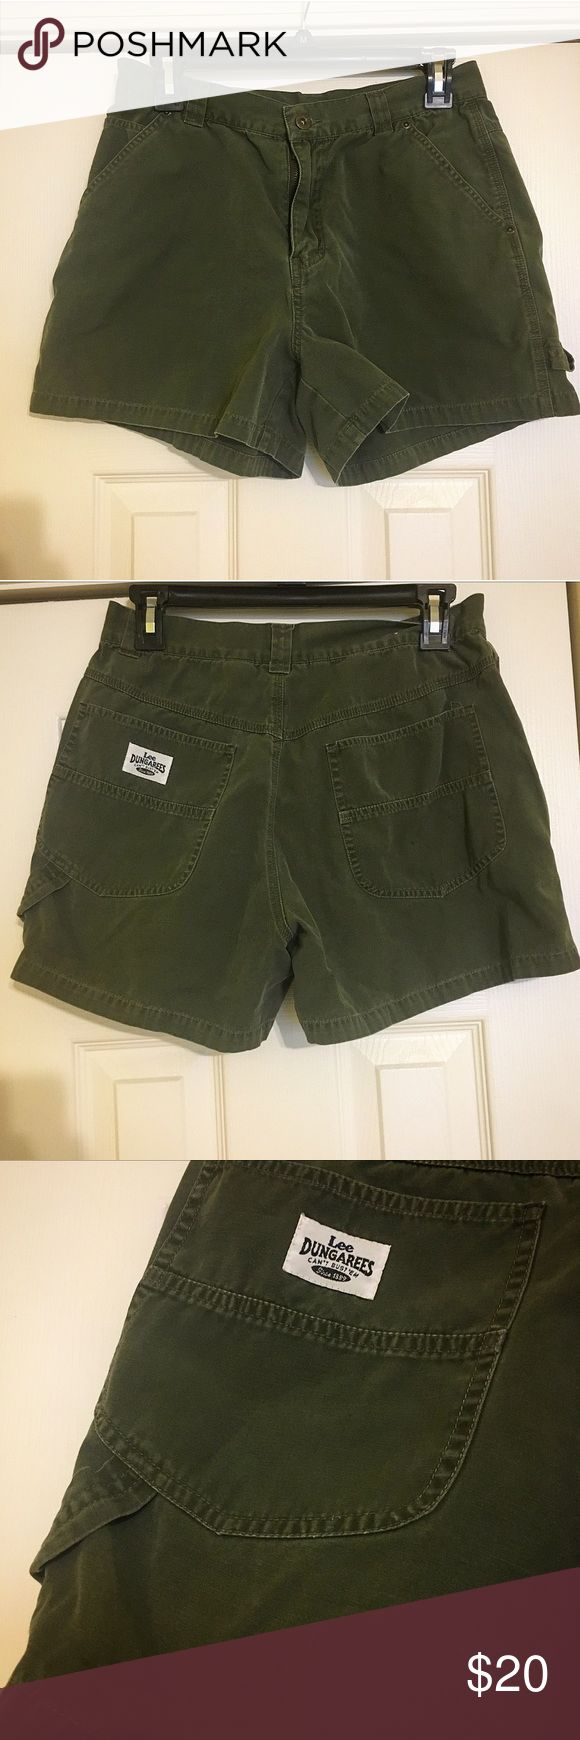 Lee Dungarees Dark Green Shorts Size 11 Lee Dungarees Size 11 Dark Green Shorts   Material: 100% cotton  Only worn a few times! Does have small spot on back pocket  ~~~  Thanks for stopping by! New items being added the rest of this week ✔️   Check out the rest of my closet & bundle to save 💲💲💲   Open to reasonable offers 💰  All items come from a smoke-free home & are packaged with love & care 💕   Please comment with any questions/inquires ☺️ much love Lee Shorts Cargos